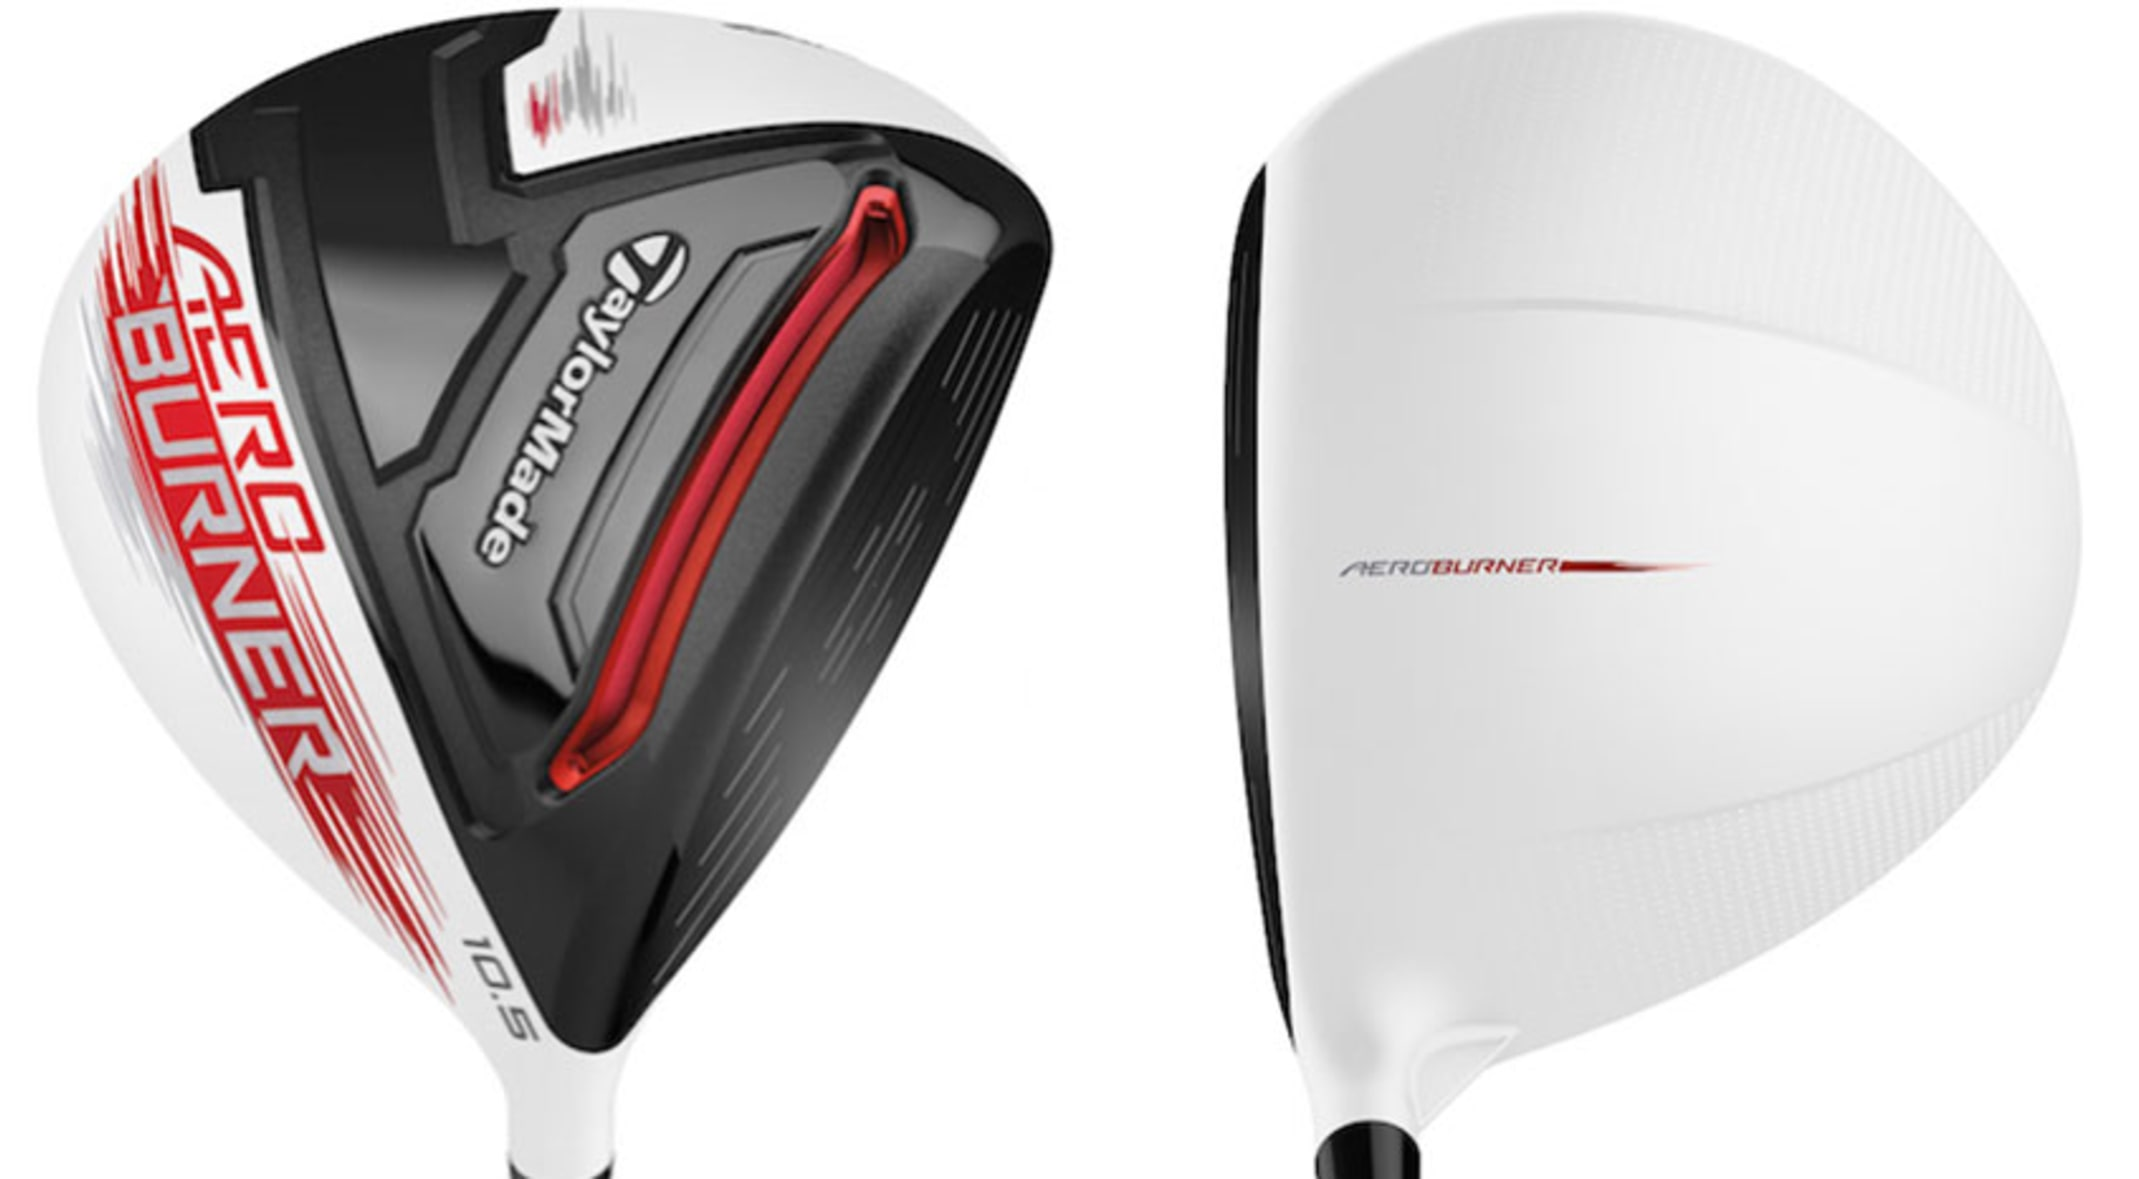 bdf76a67402 The TaylorMade AeroBurner driver has the largest speed pocket the company  has ever produced. (